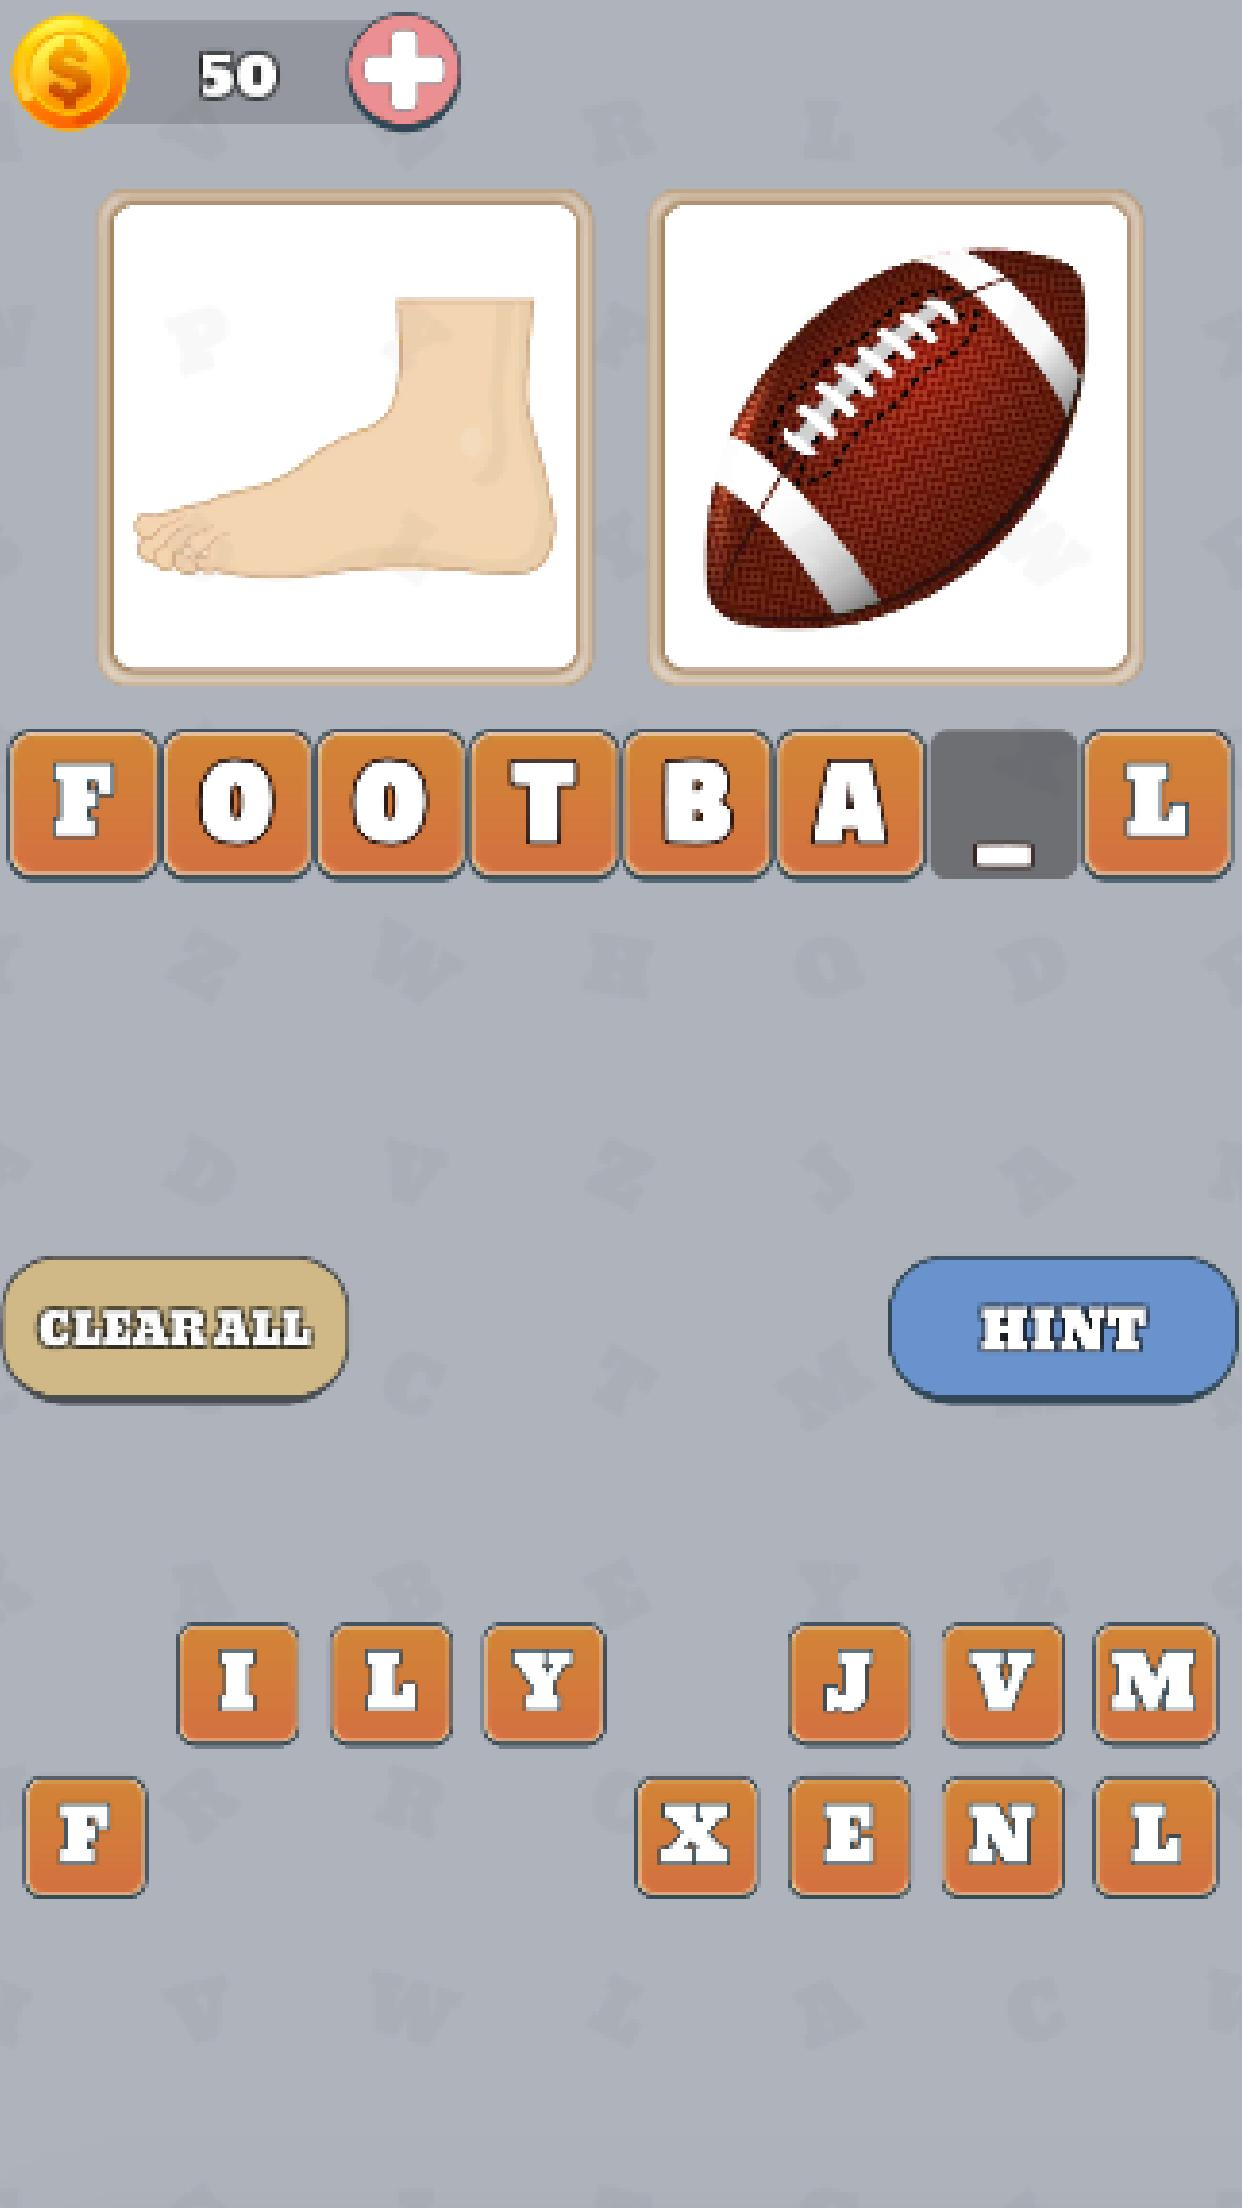 Pictures to word - picture quiz screenshot 3